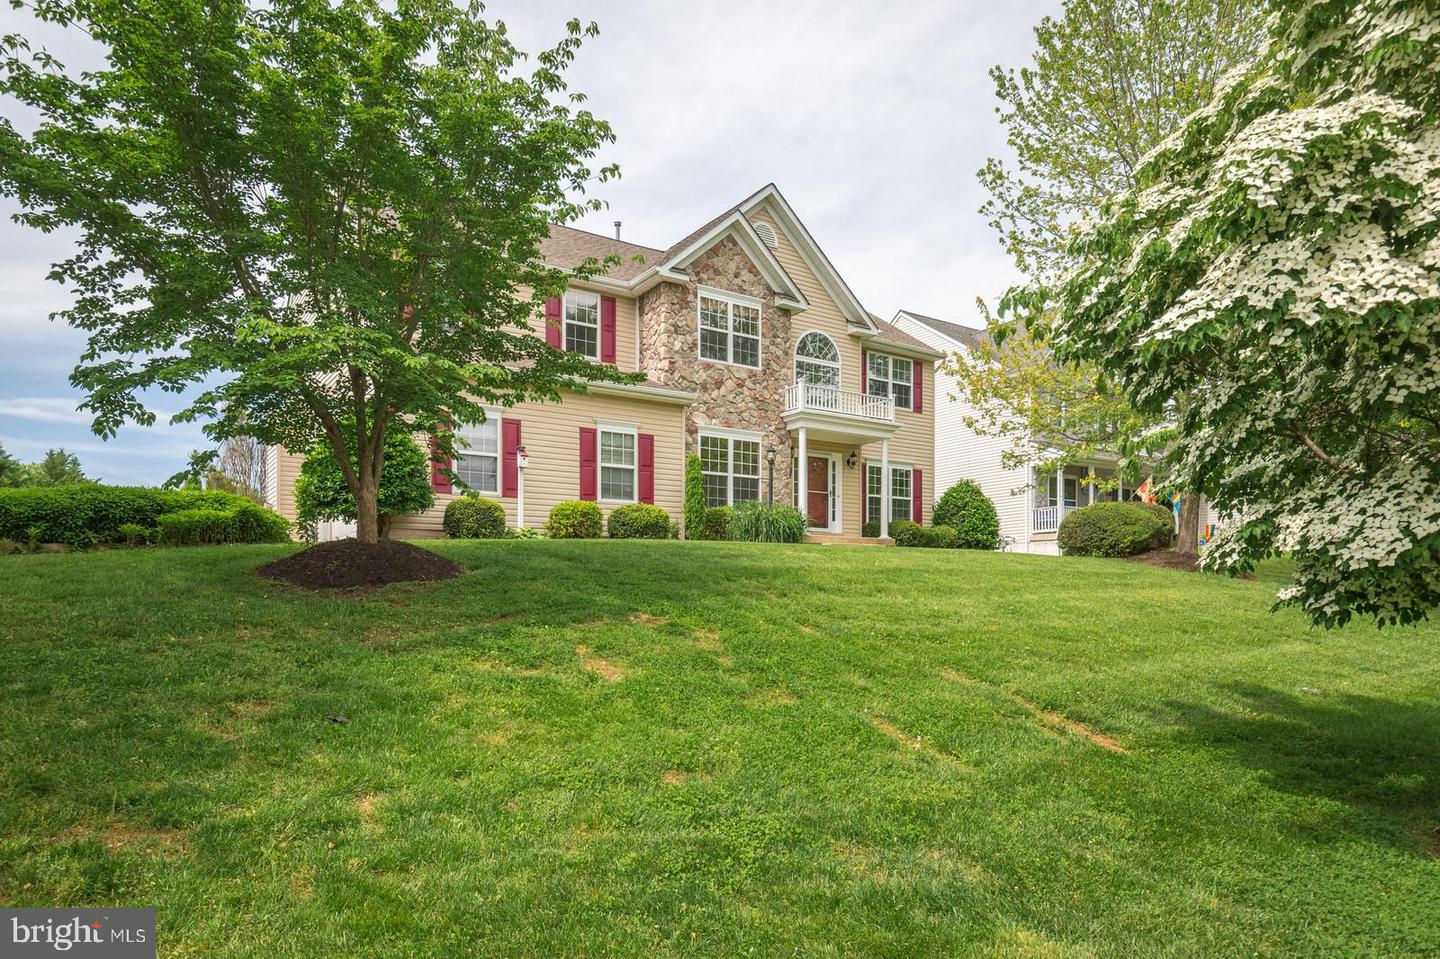 Single Family for Sale at 676 Fox Chase St Warrenton, Virginia 20186 United States